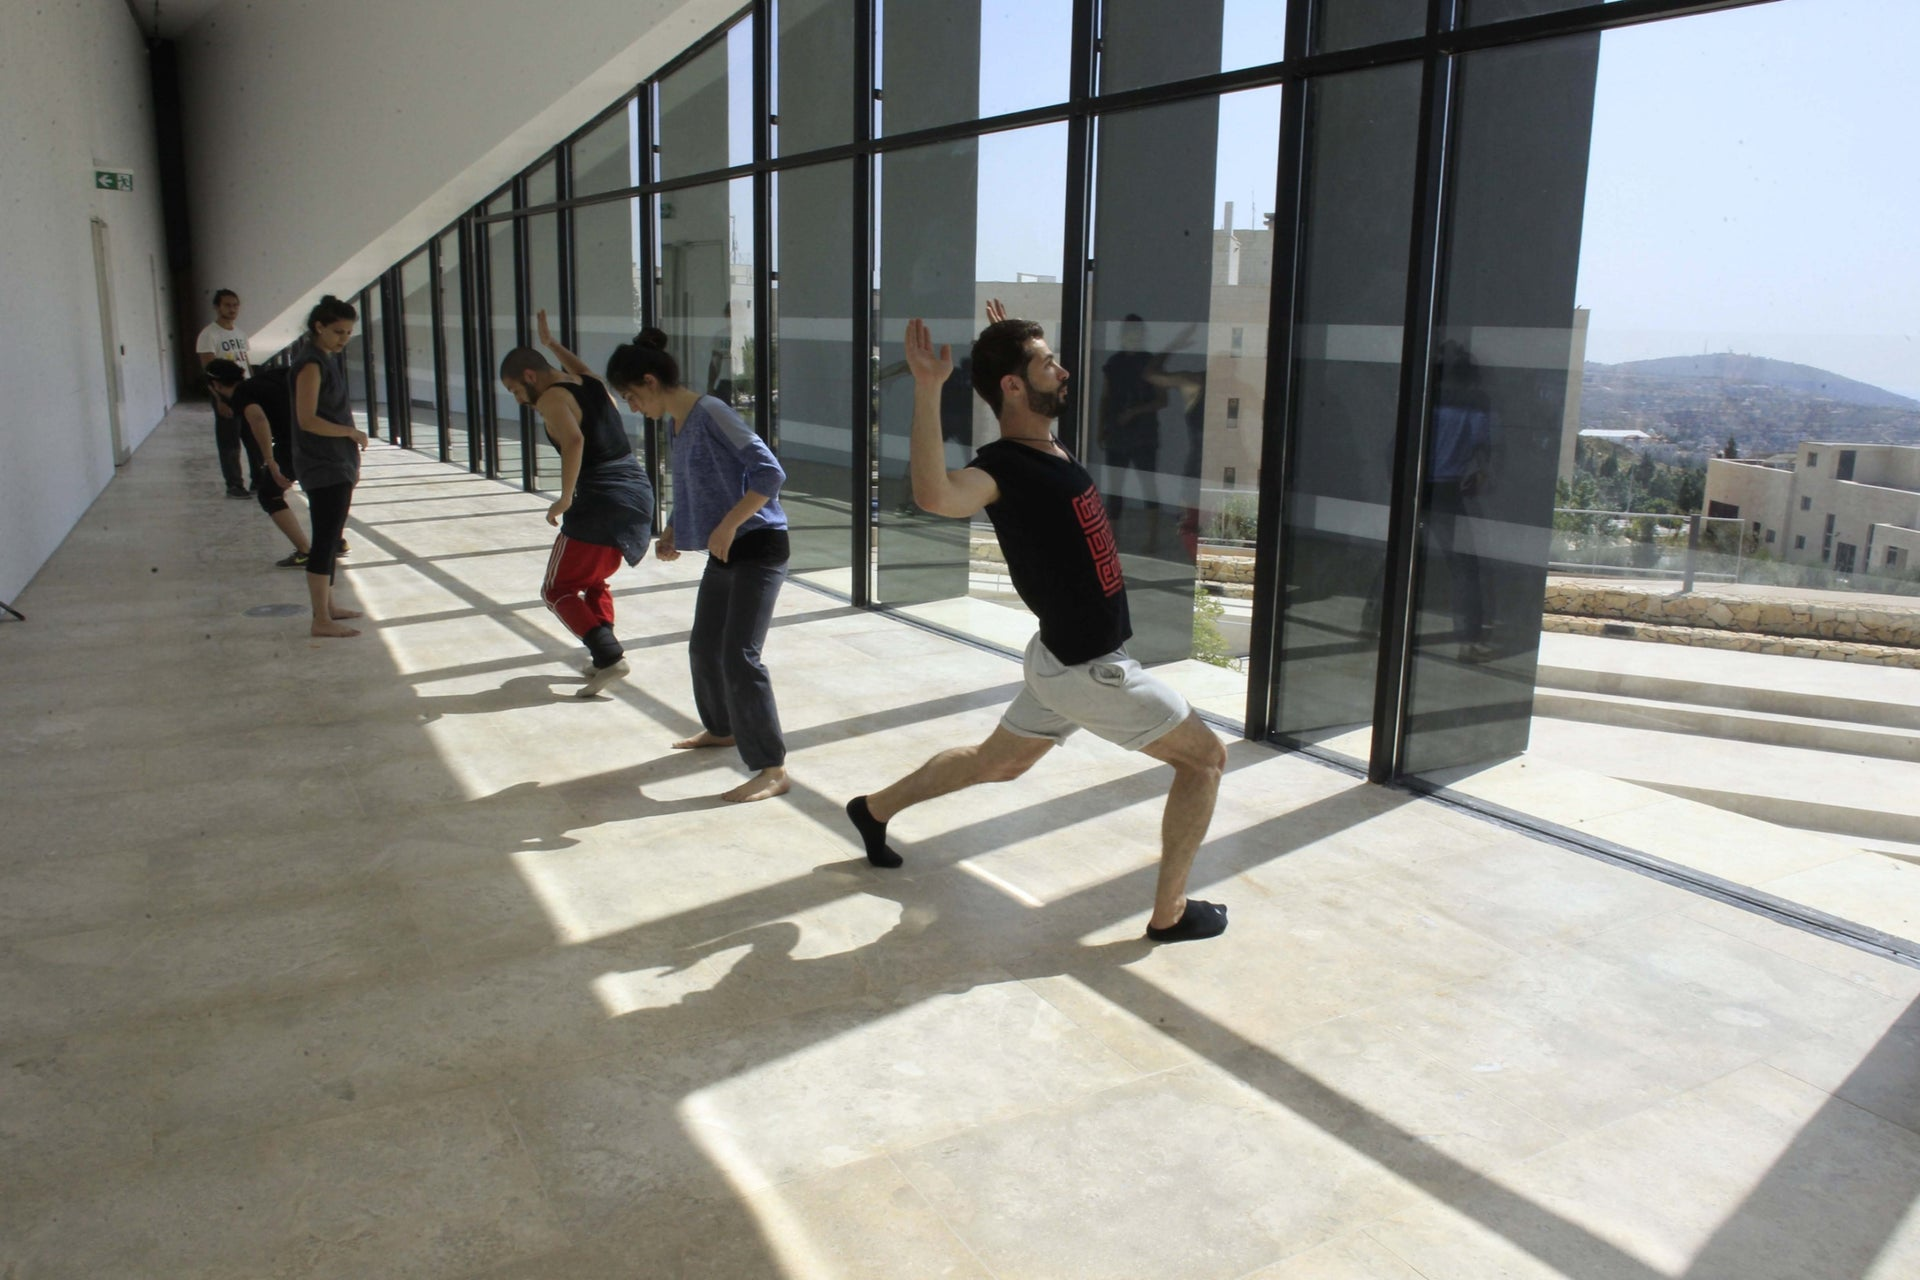 Dancers practice in a space within the new Palestinian Museum near Ramallah.